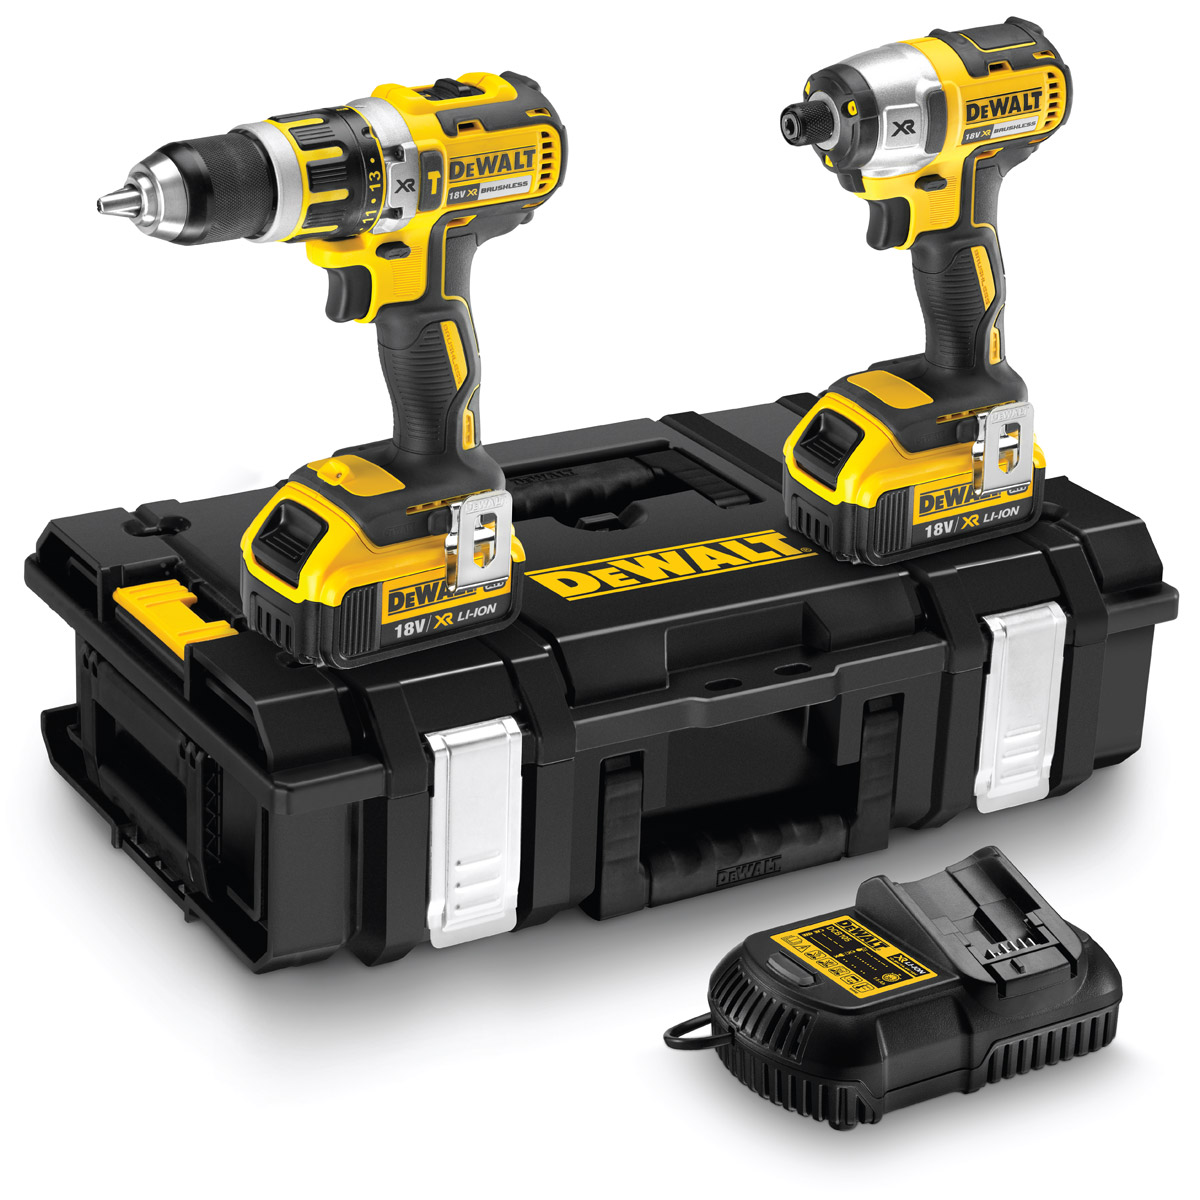 DEWALT DCK250M2 18V BRUSHLESS TWIN PACK 2 x 4.0ah Li-ion BATTERIES